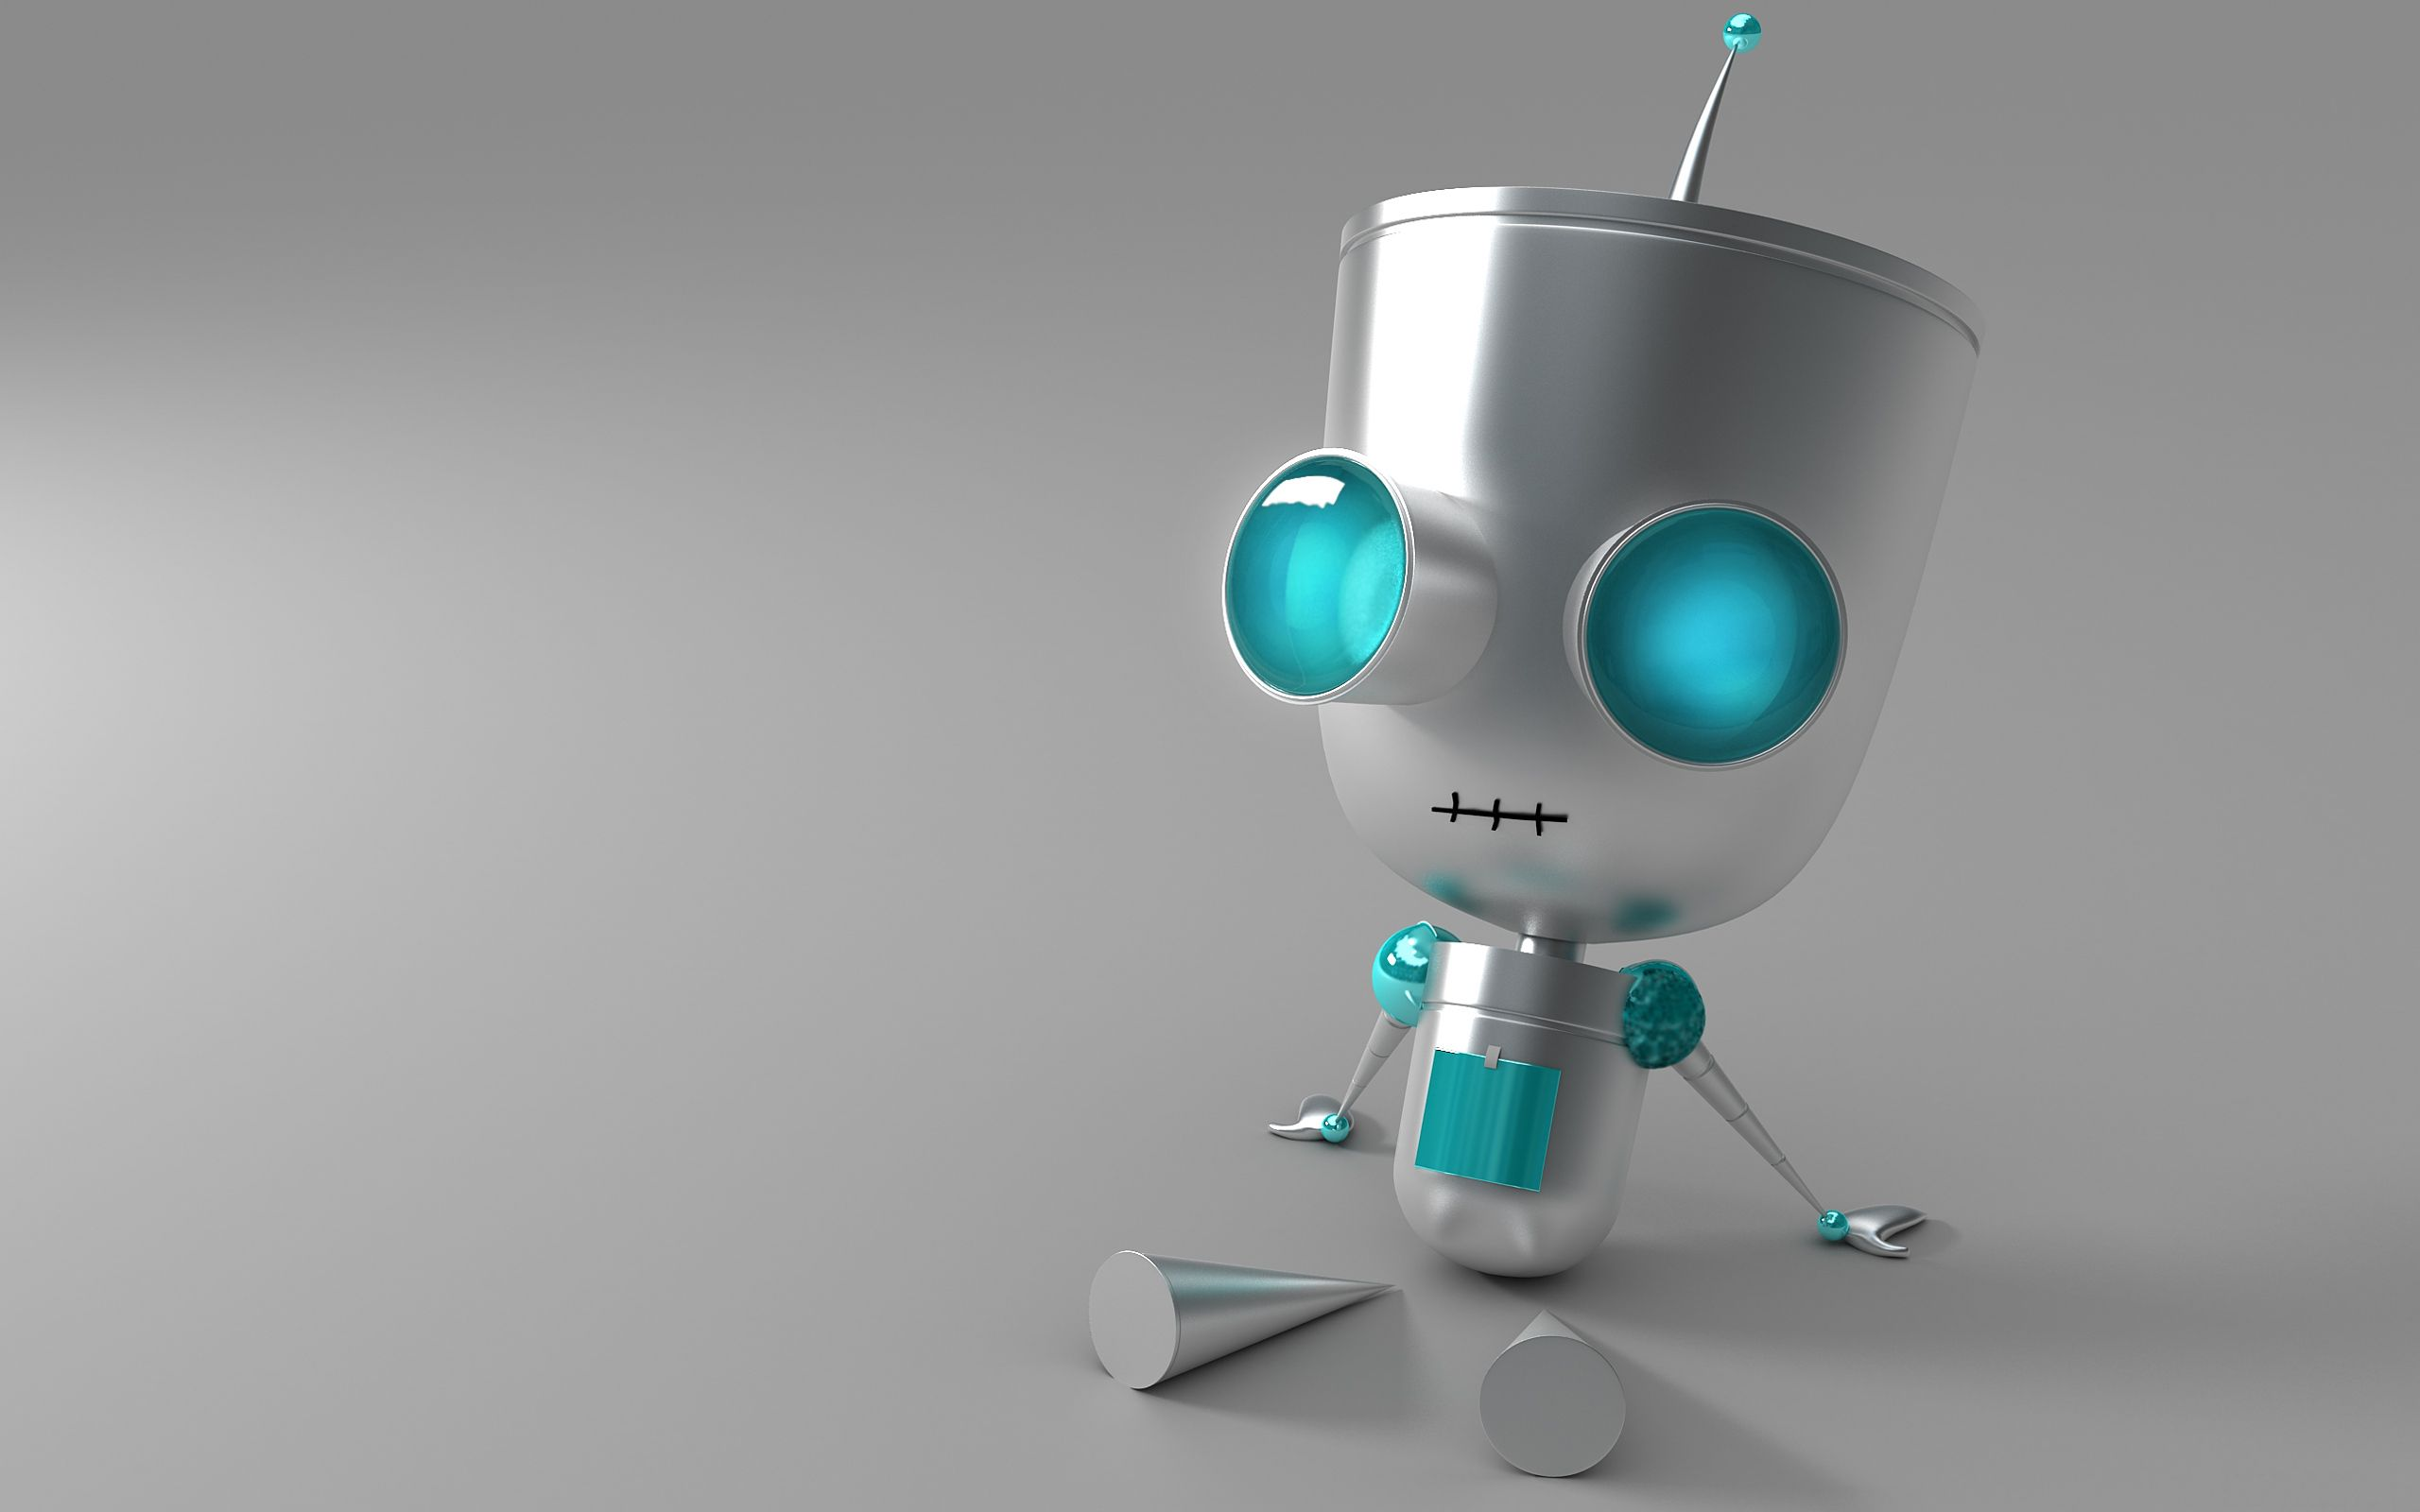 120574 download wallpaper 3D, Robot, Eyes, Metal screensavers and pictures for free